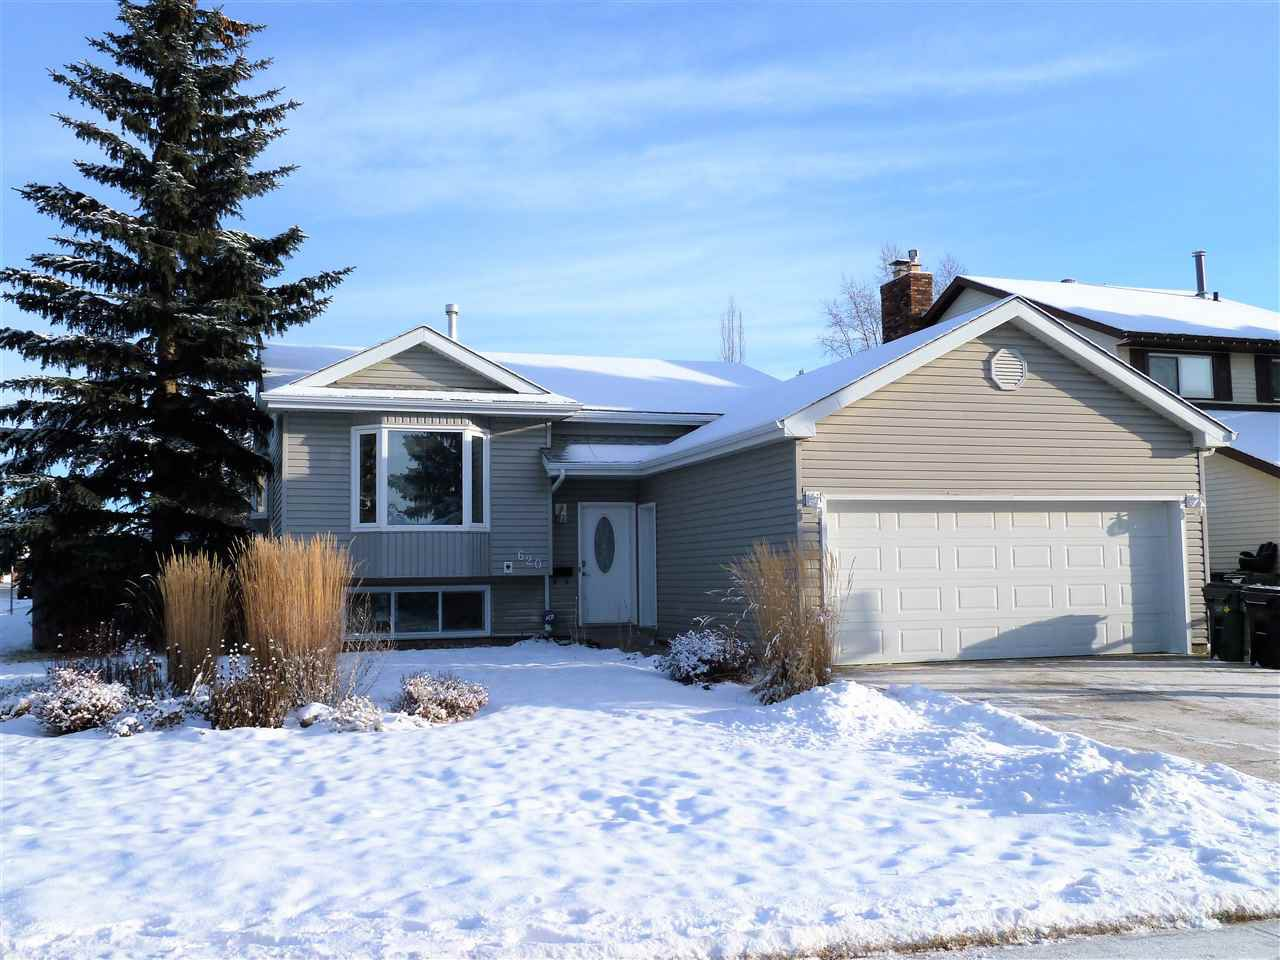 Main Photo: 620 VICTORIA Way: Sherwood Park House for sale : MLS®# E4185040